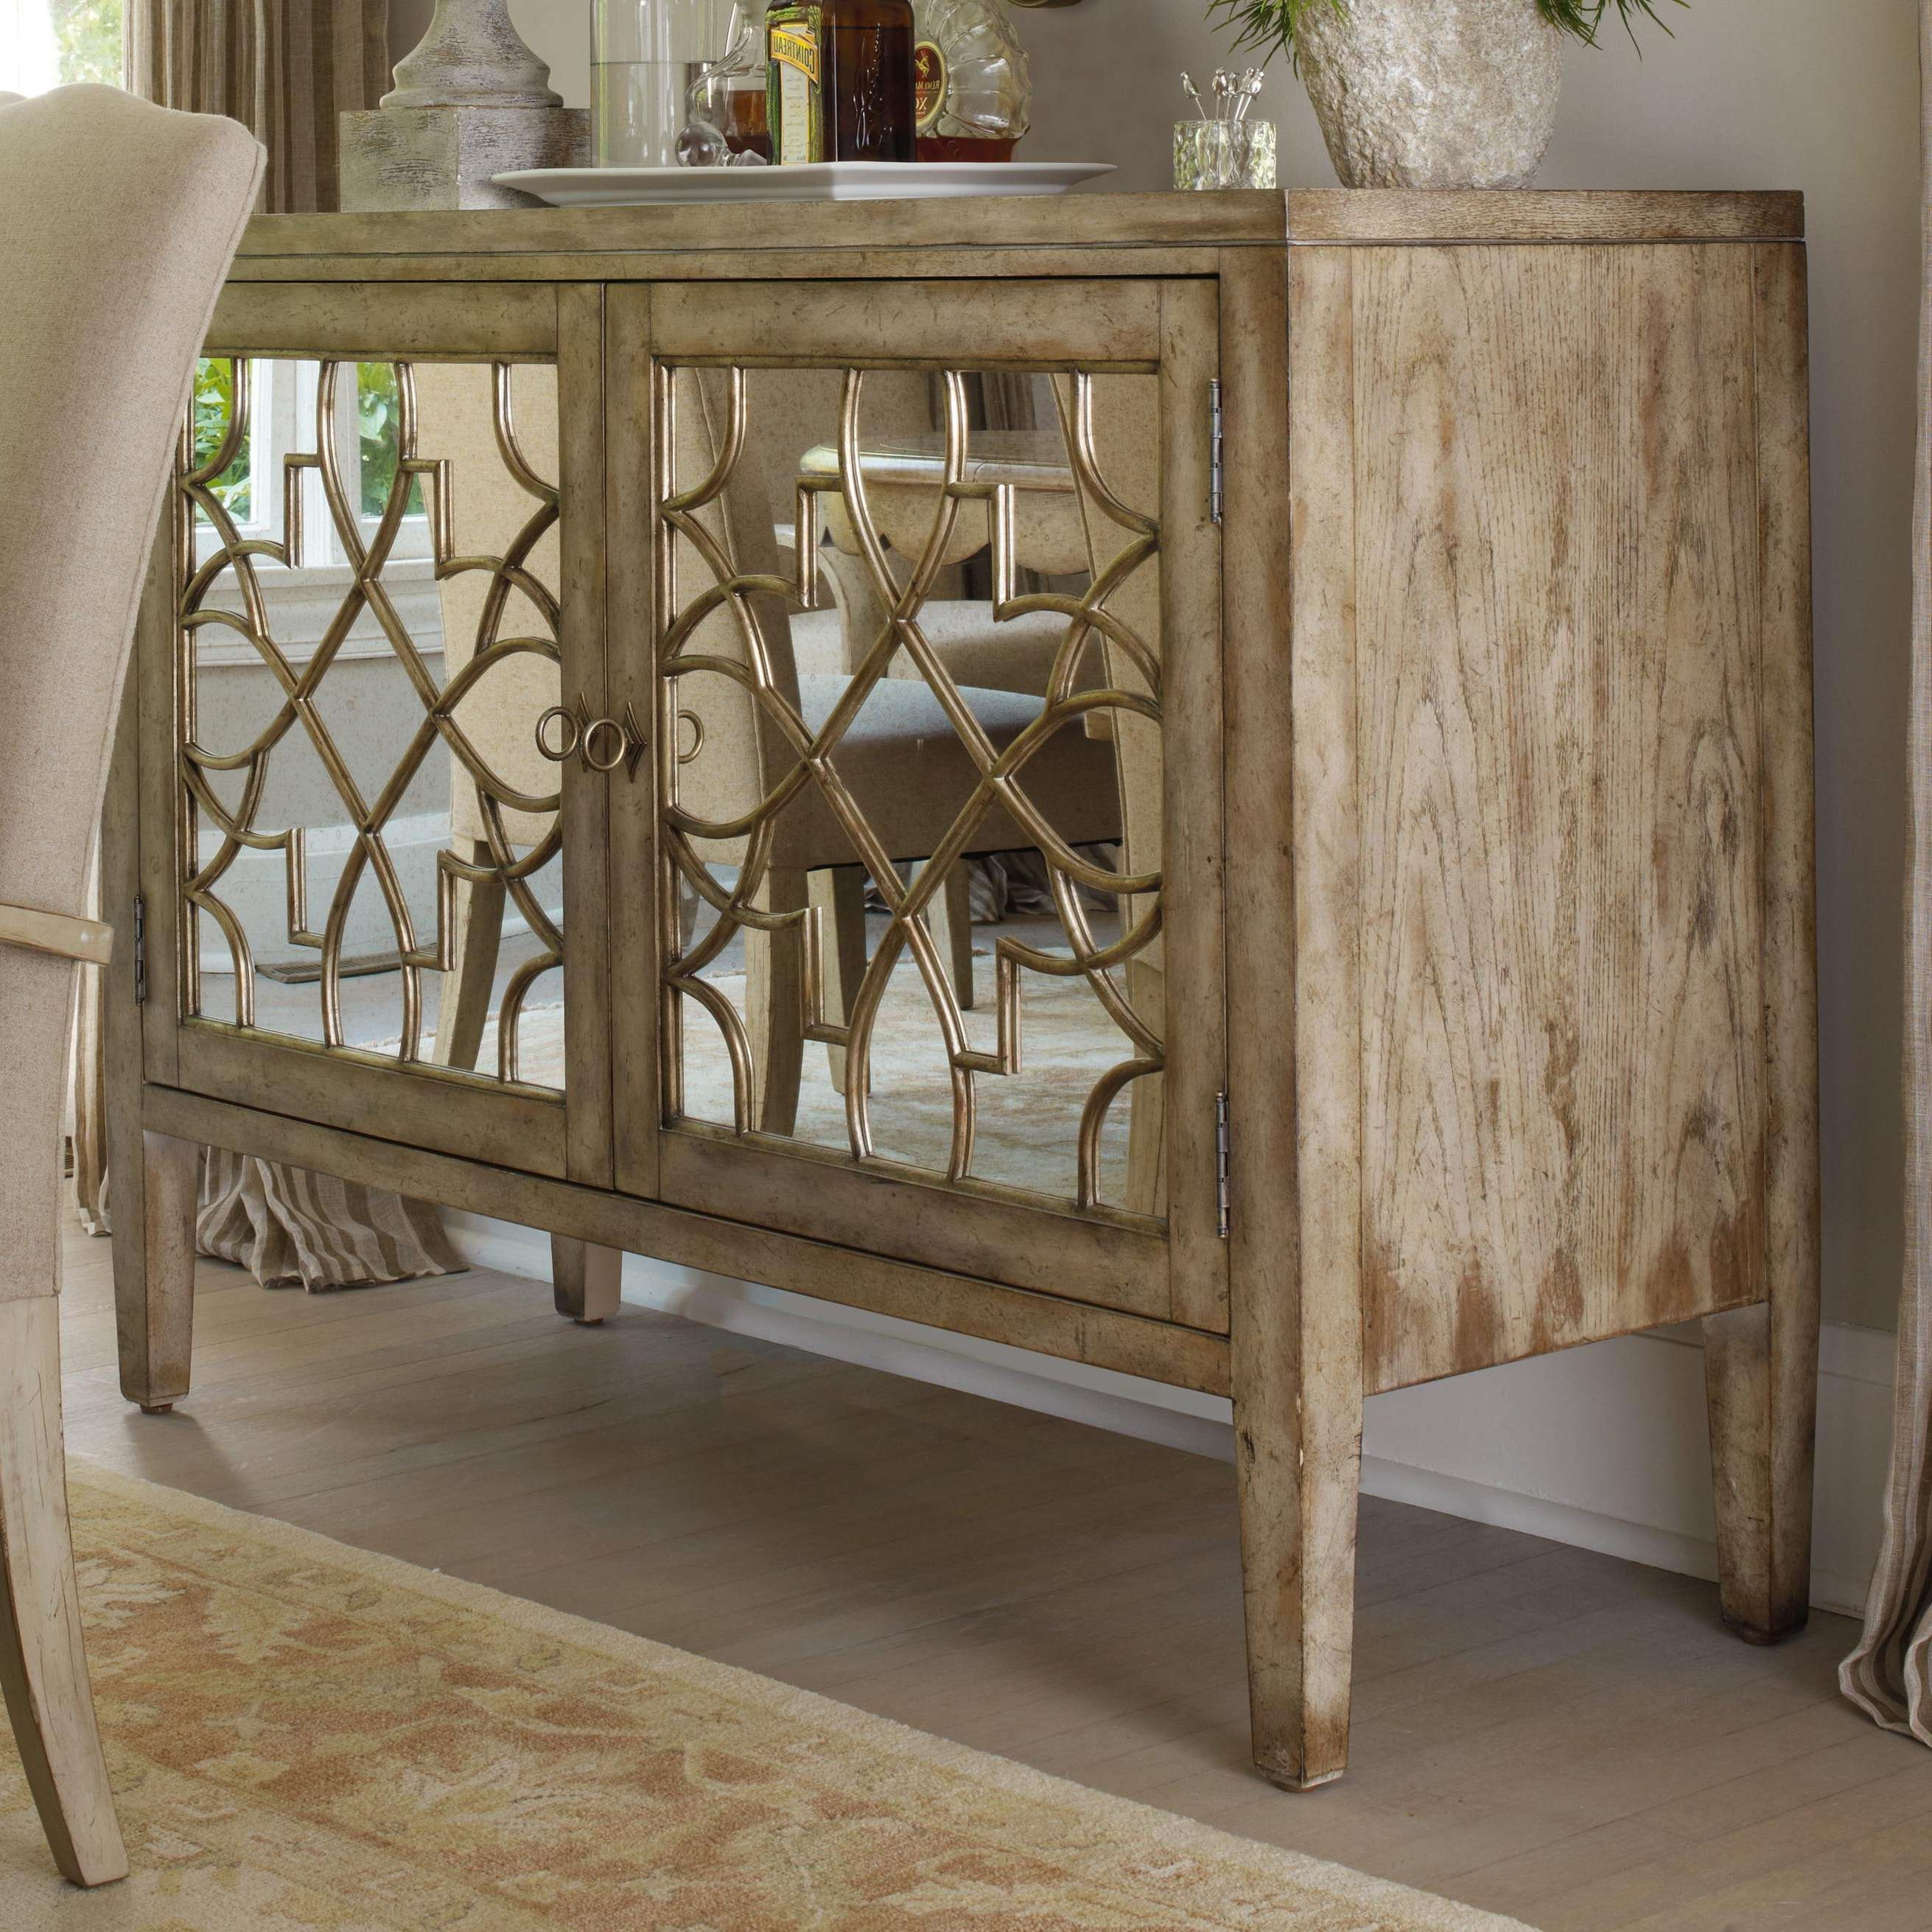 Hooker Furniture Sanctuary Two Door Mirrored Console – Ahfa Inside Mirrored Sideboards And Buffets (View 6 of 20)